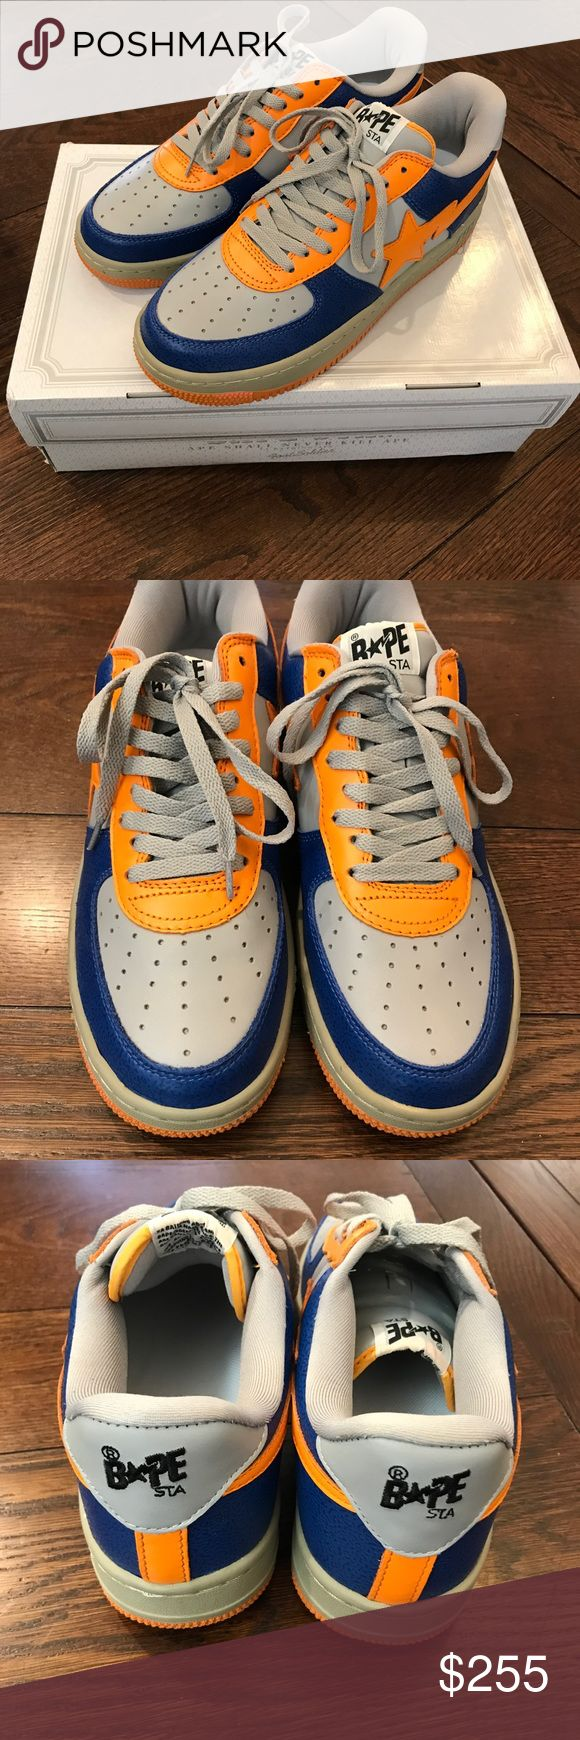 Bape Orange and Blue Leather Bapesta Sneakers For sale is a barely used pair of Bape Bapesta model sneakers in blue, orange, and grey leather. Originally purchased at the Bape store in NYC in the summer of 2013. No toe box creases, chipped insole logo, and faded outsole stars due to being worn less than 5 times. Some manufacture defects such as white stitch and tiny chipping of outsole (see last picture). Original box with secret inside detail panel included. Message if any questions. Bape…